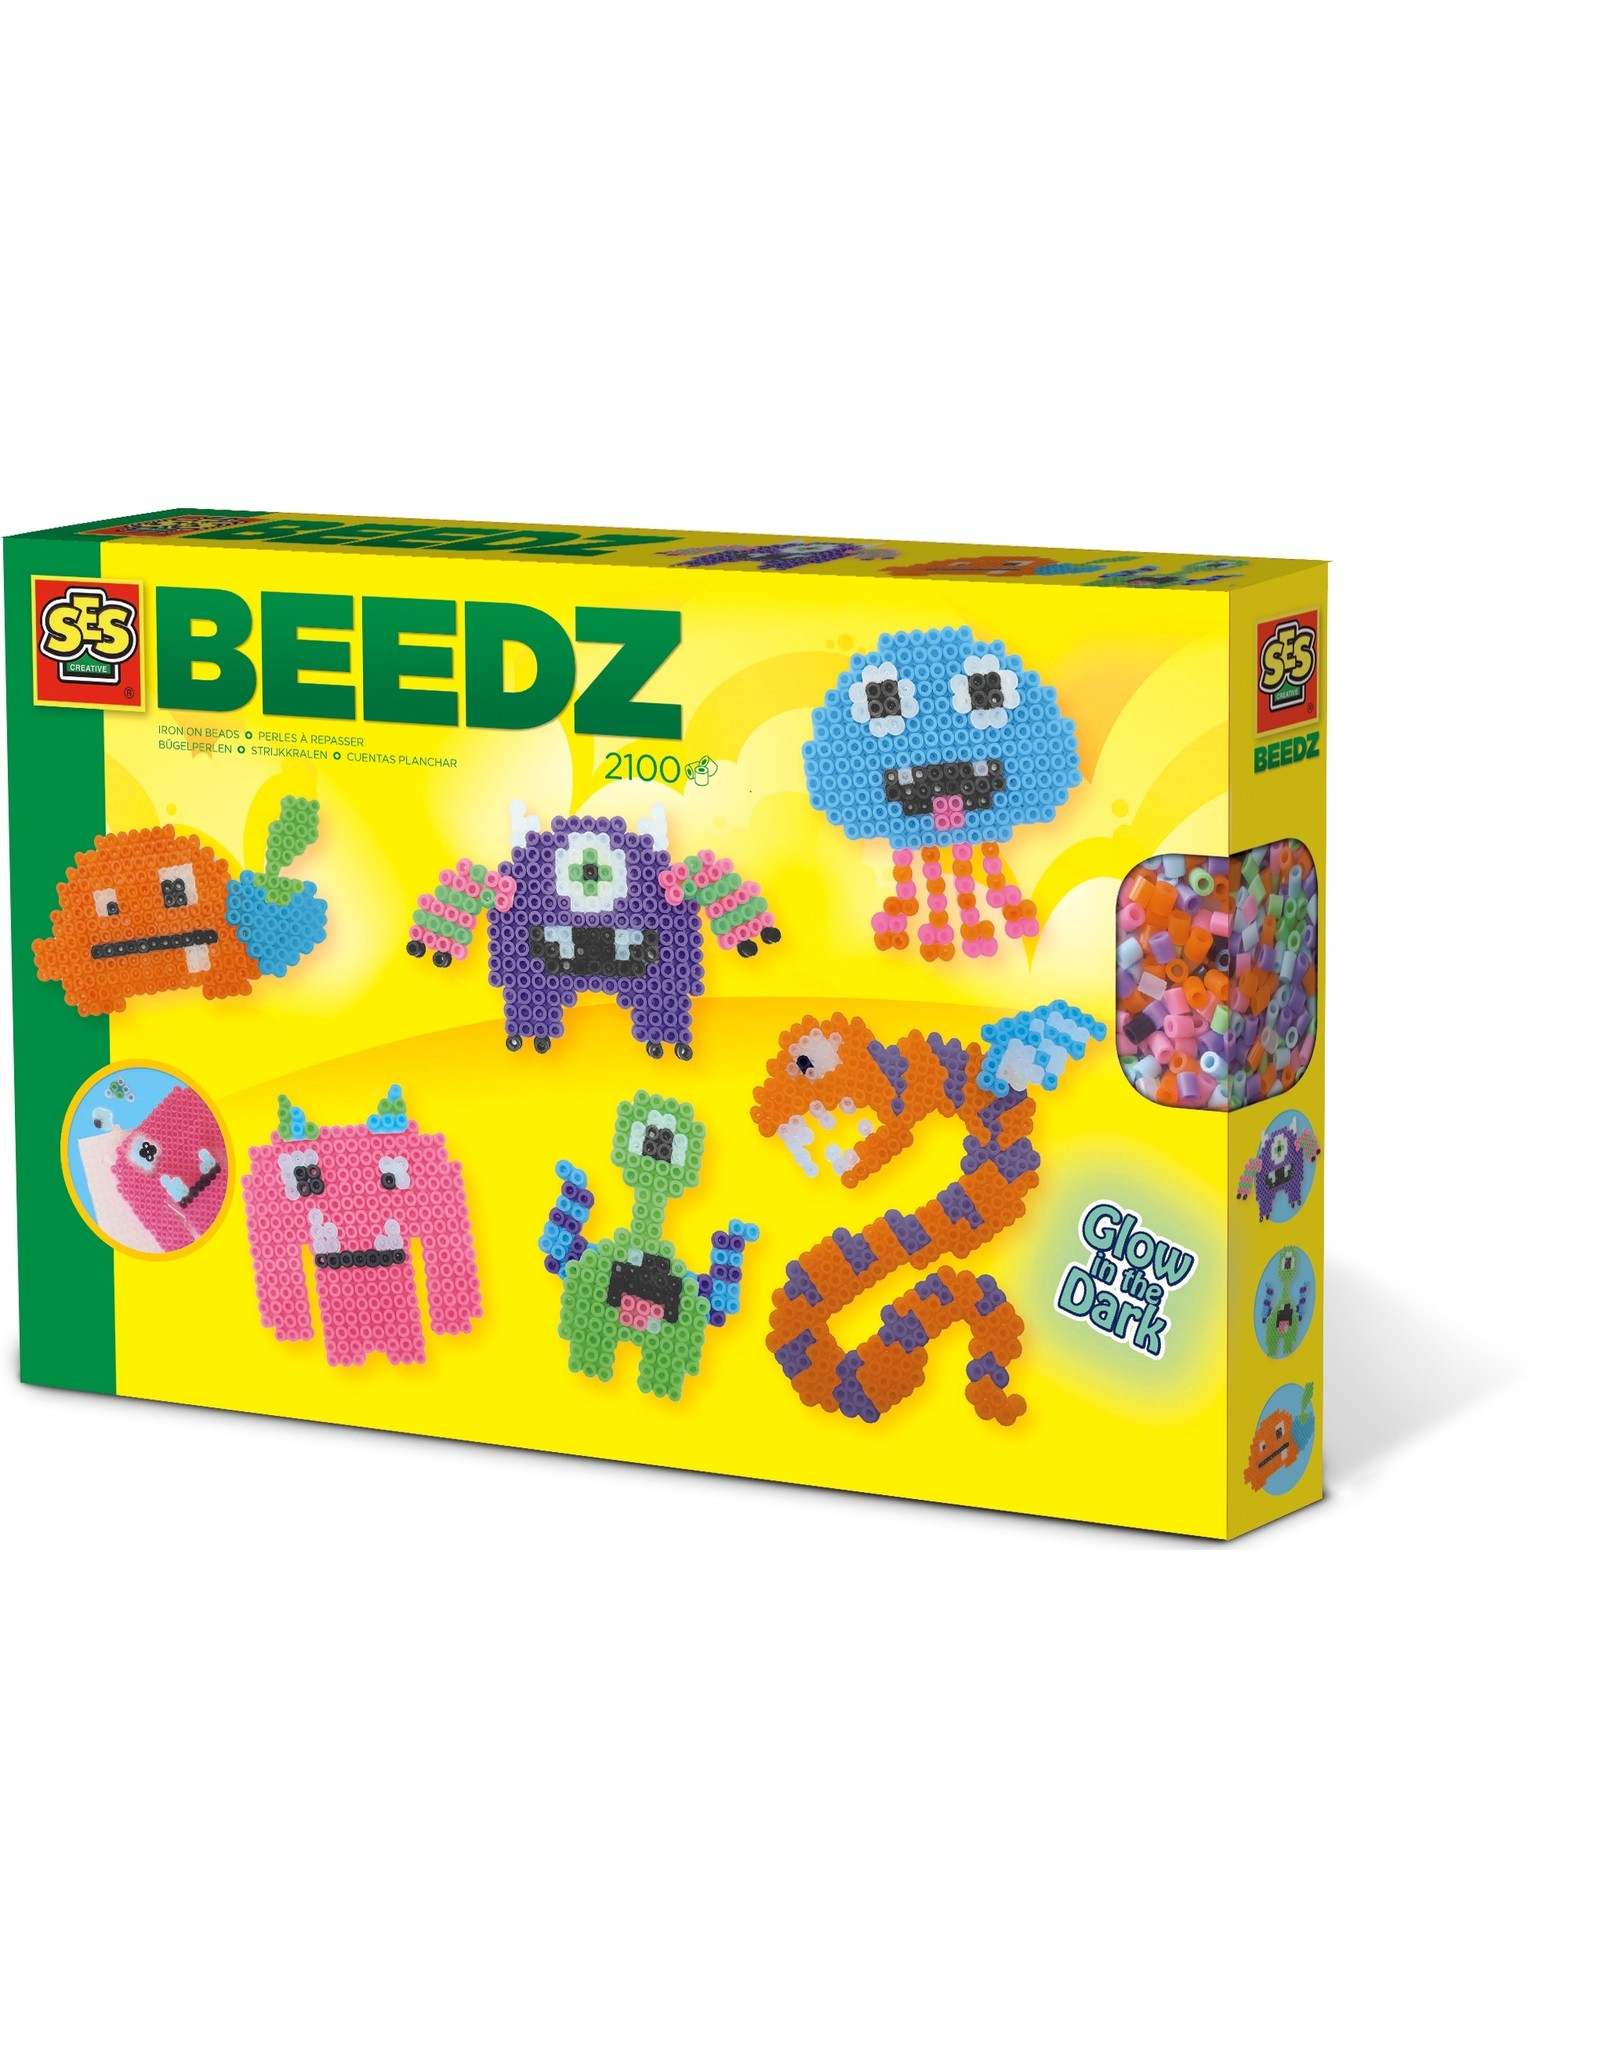 SES Creative *Beedz - Strijkkralen Glow in the dark monsters